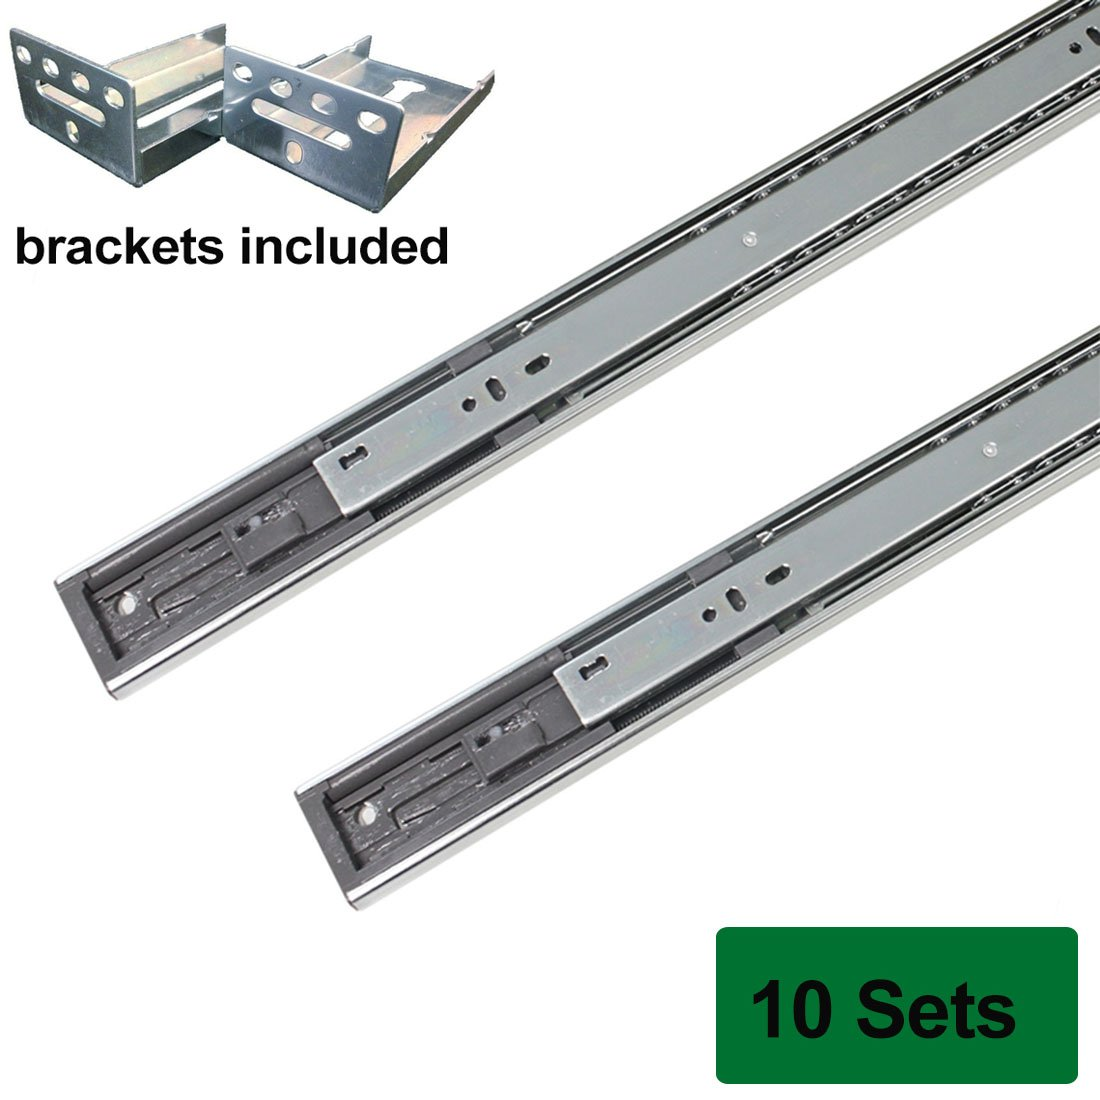 Probrico Brackets Included Rear Mount Drawer Slides 22 Inch Full Extension 22-inch 100 Lb. Sliding System Soft Close,10 Pairs Sets